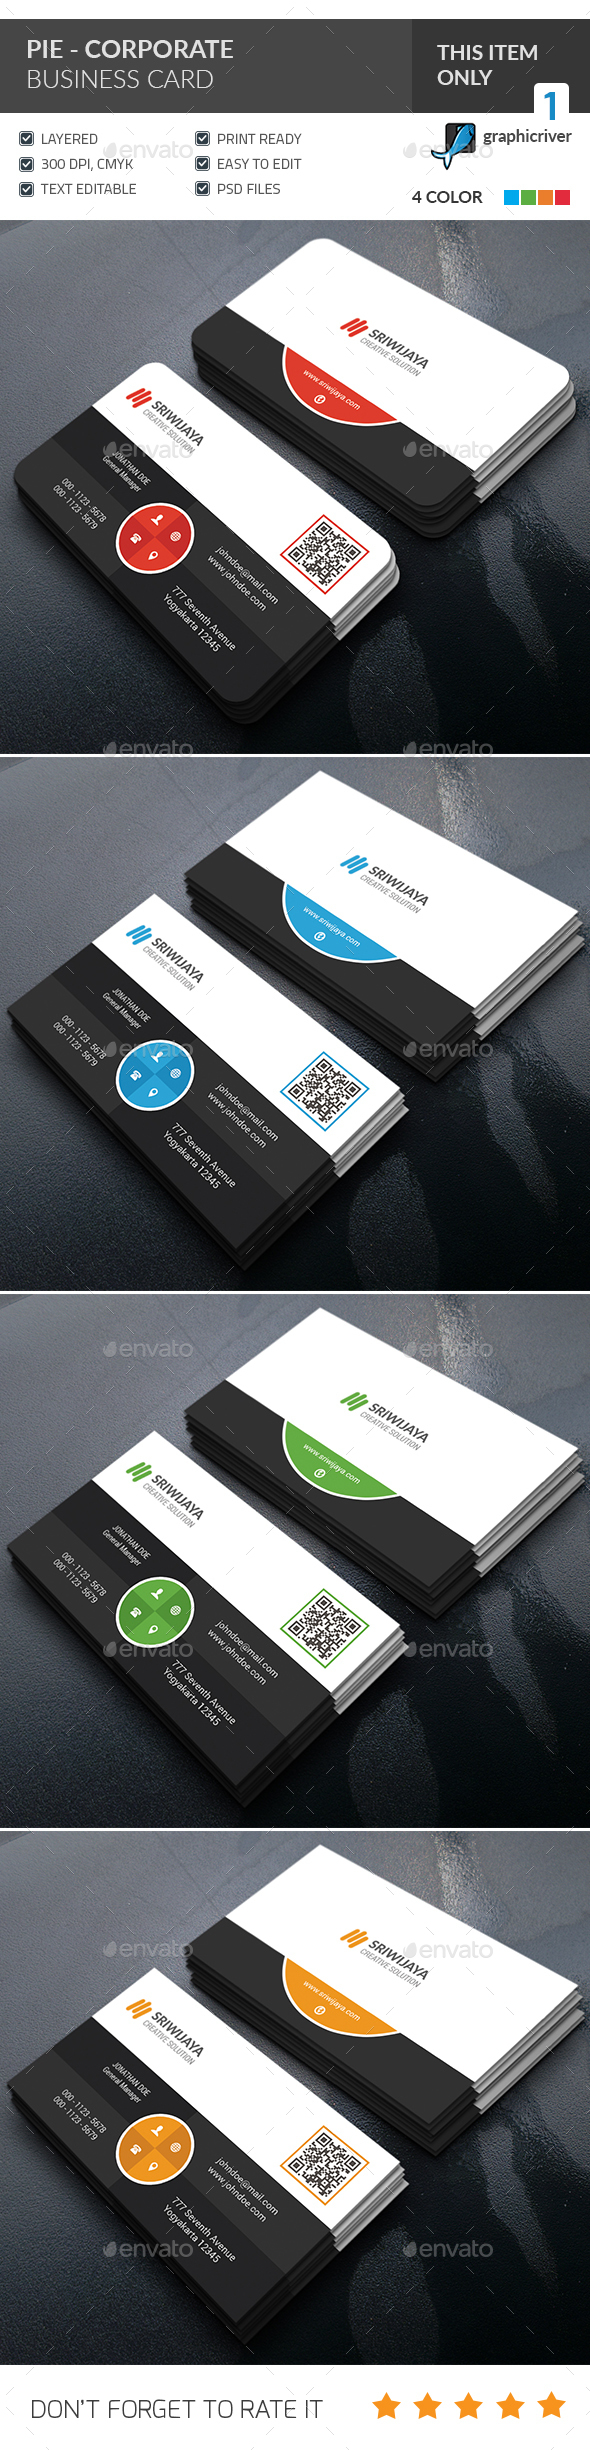 Pie Corporate Business Card - Corporate Business Cards